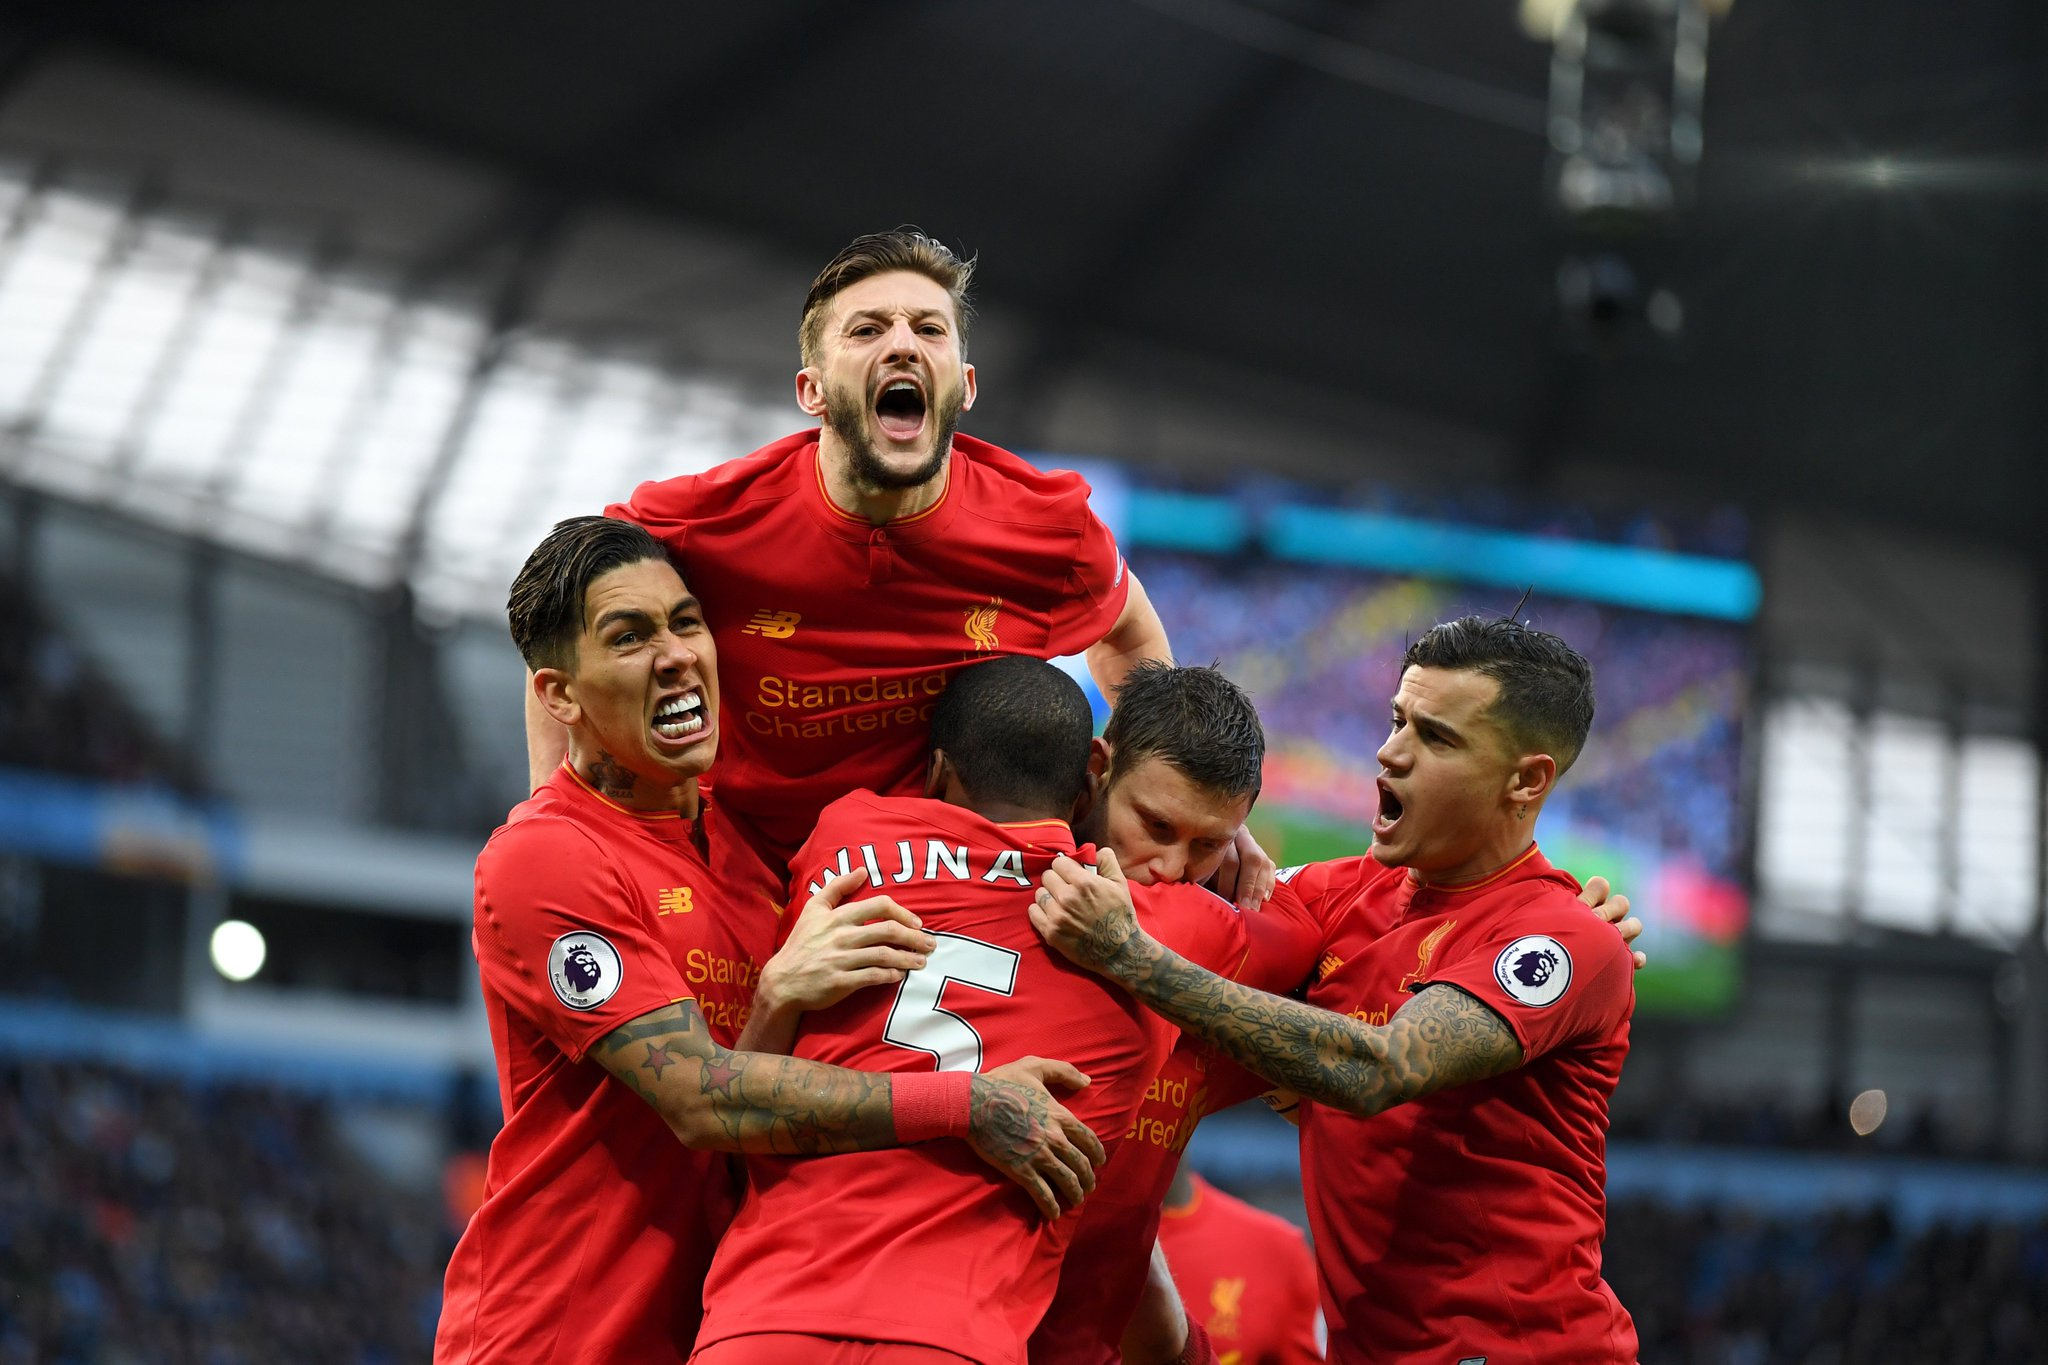 Most points in the top six mini league:  Liverpool (20) Chelsea (13) Spurs (9) Man City (8) Man Utd (6) Arsenal (5) https://t.co/pkCZ1eelS3